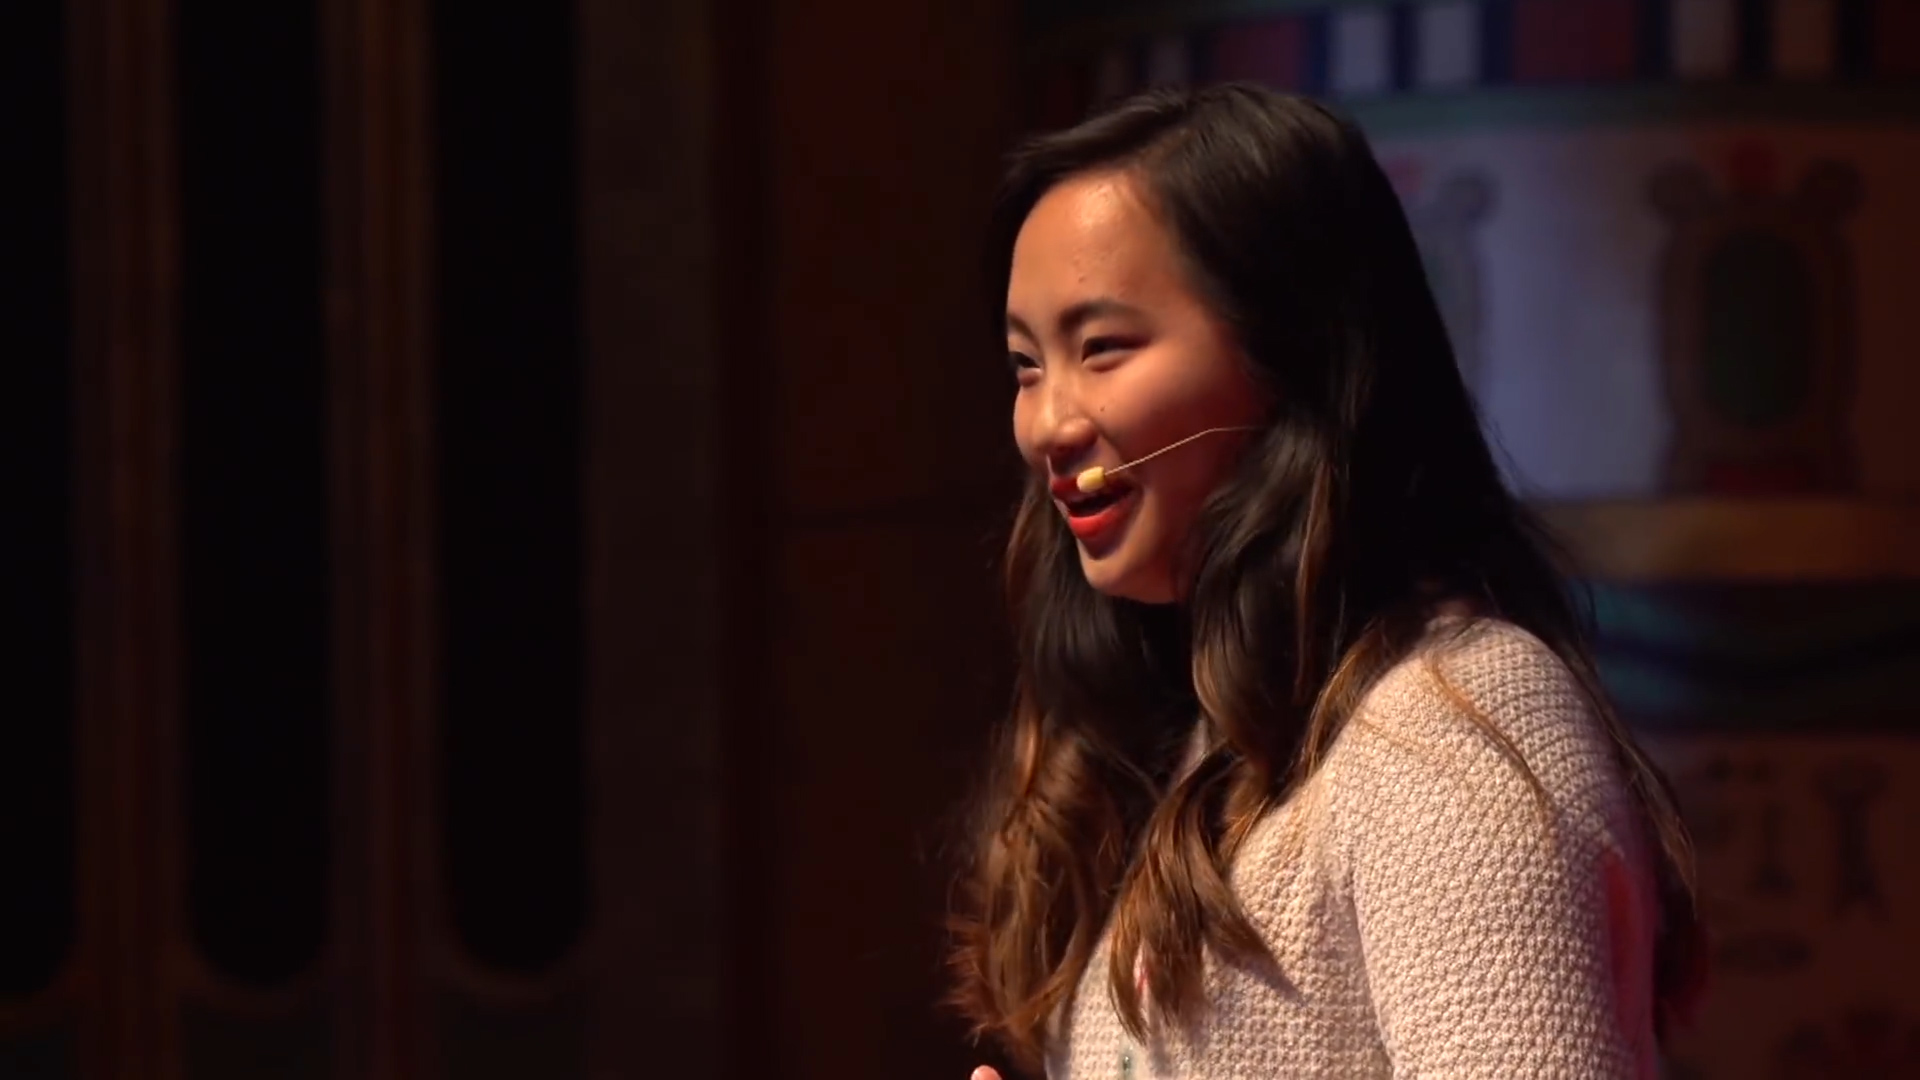 [2] I Am Not Your Asian Stereotype - Canwen Xu